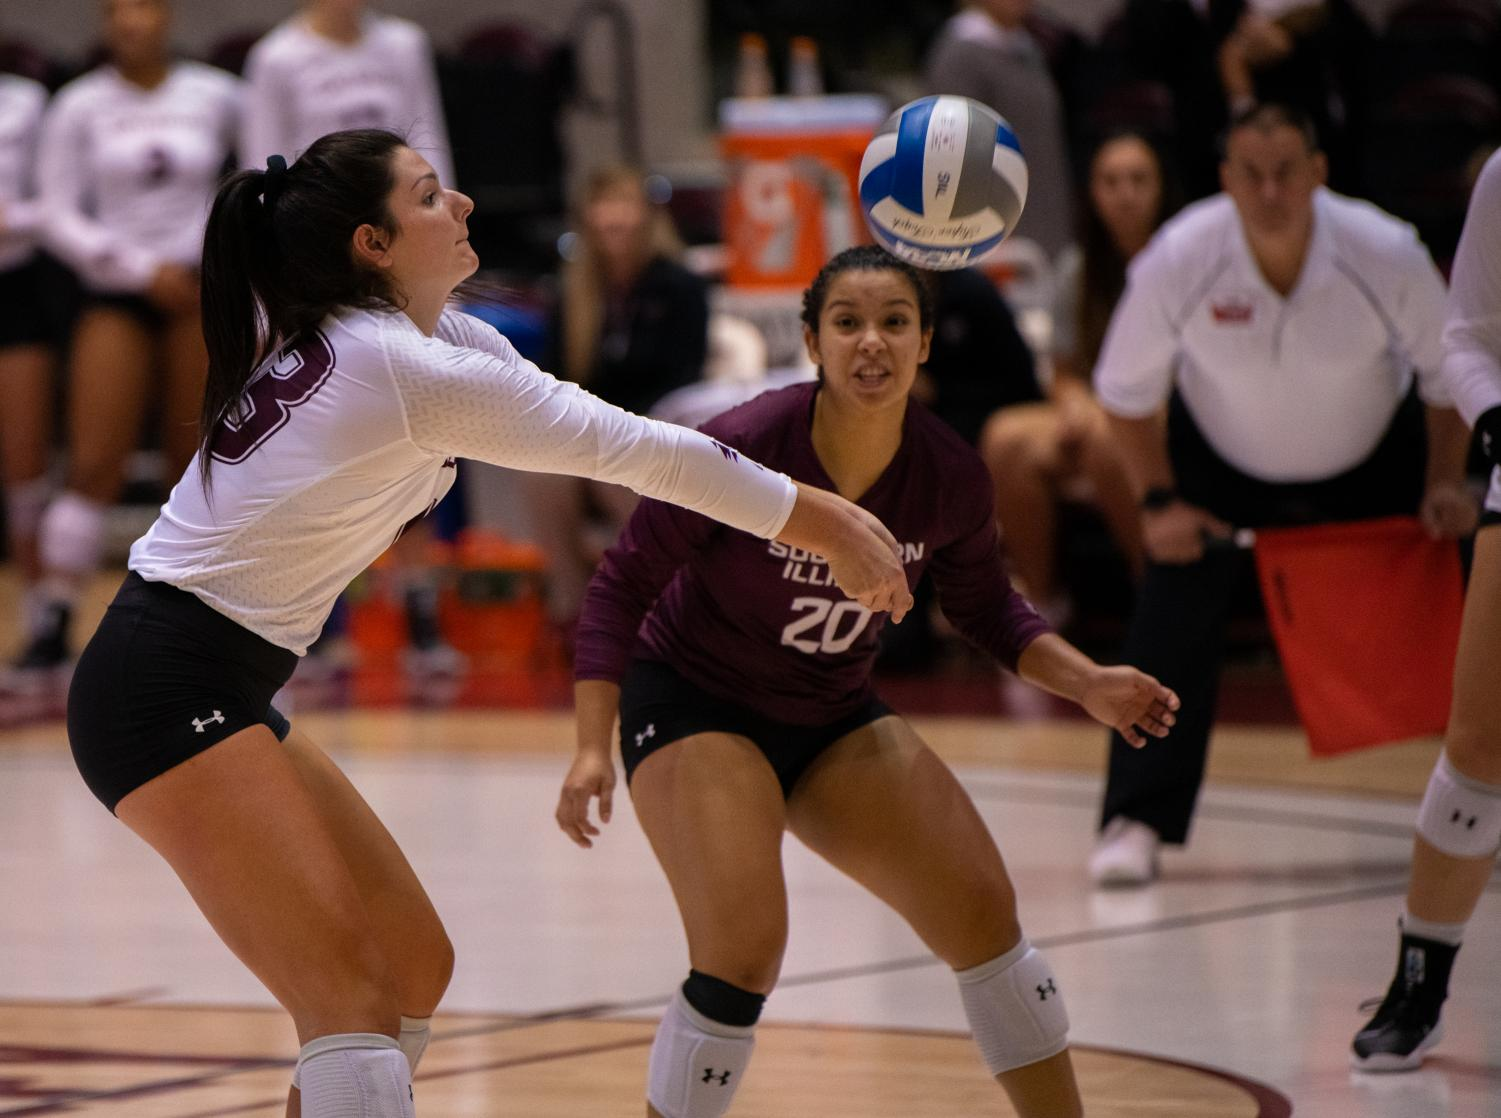 Junior+setter+Rachel+Maguire+hits+the+ball+on+Saturday%2C+Sept.+7%2C+2019+during+the+Salukis%E2%80%99+3-1+win+against+the+Southeastern+Louisiana+University+Lions+at+the+Banterra+Center.+